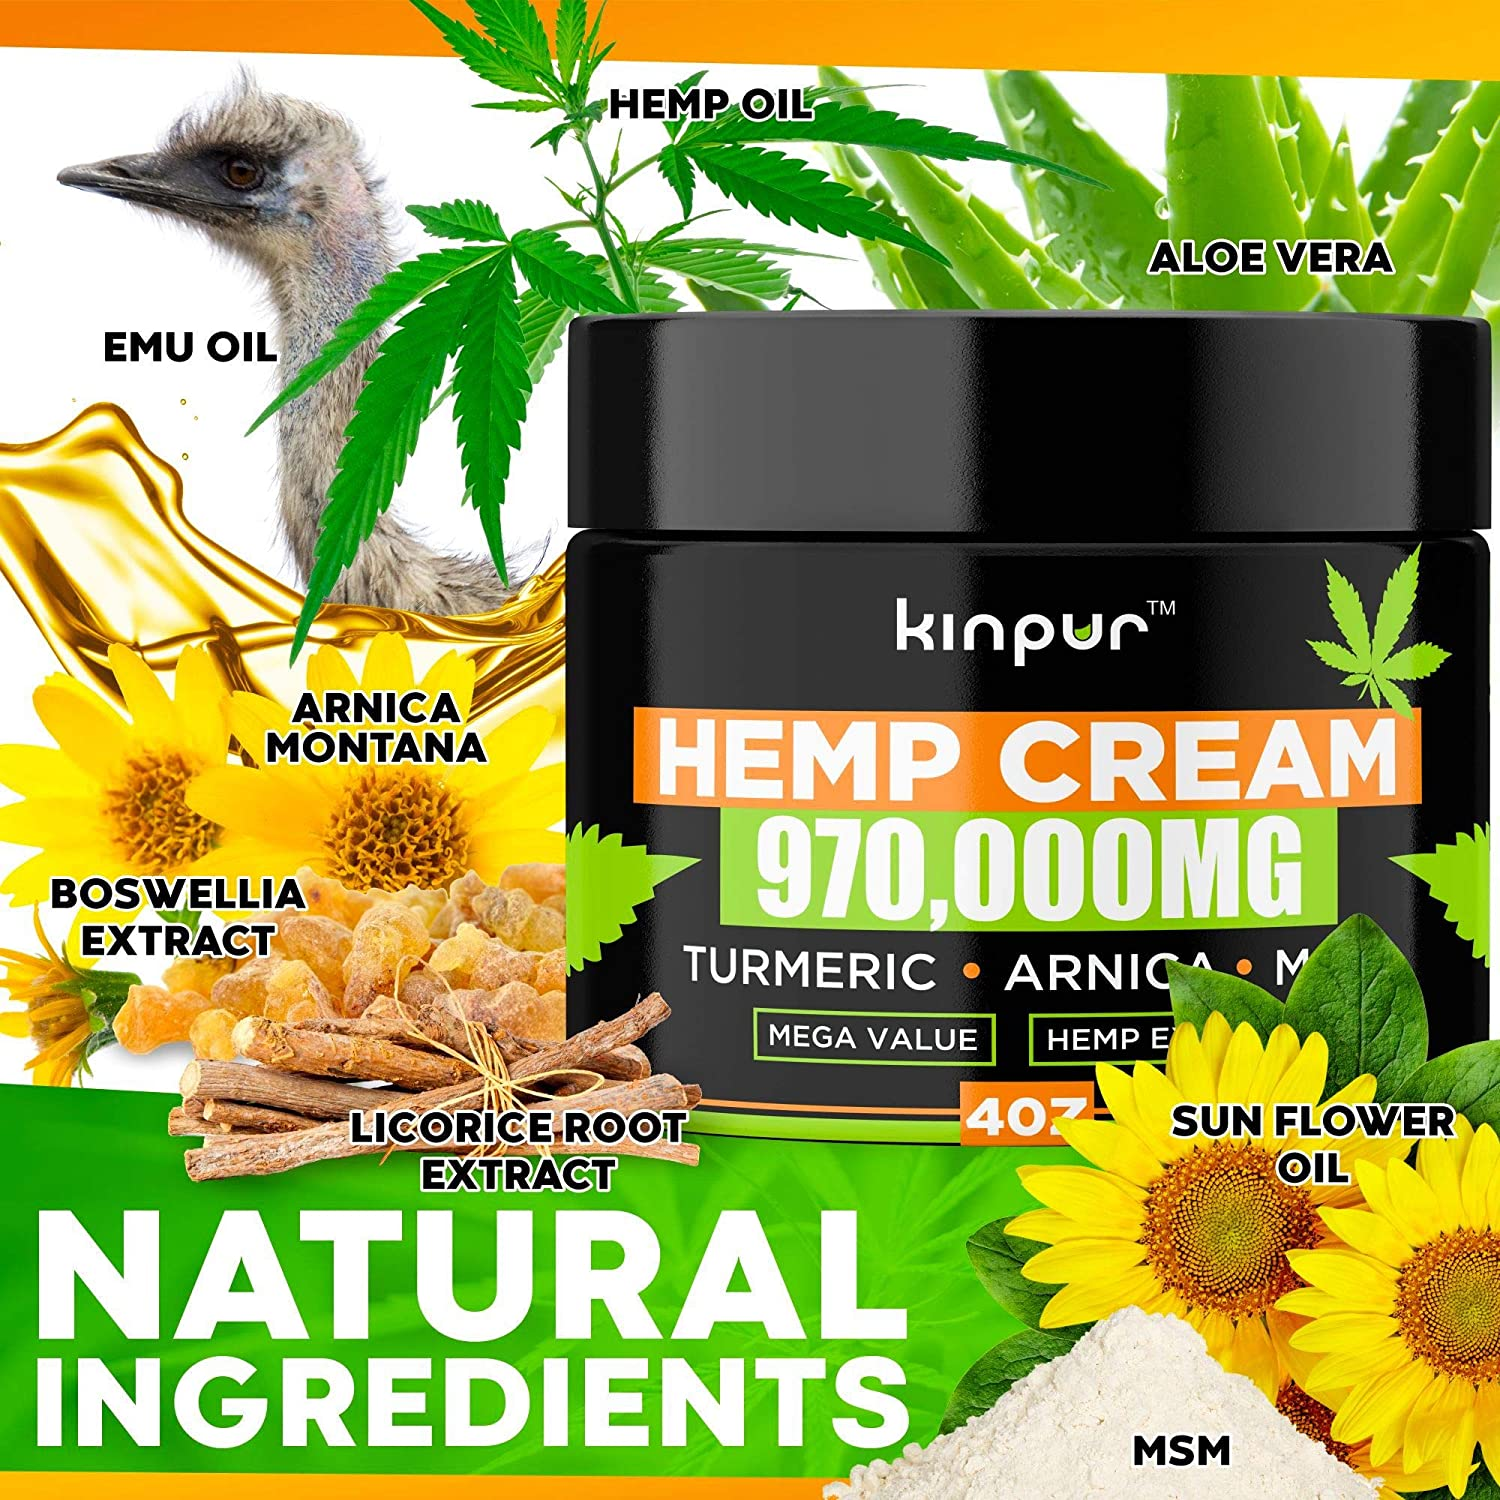 Kinpur Hemp Cream